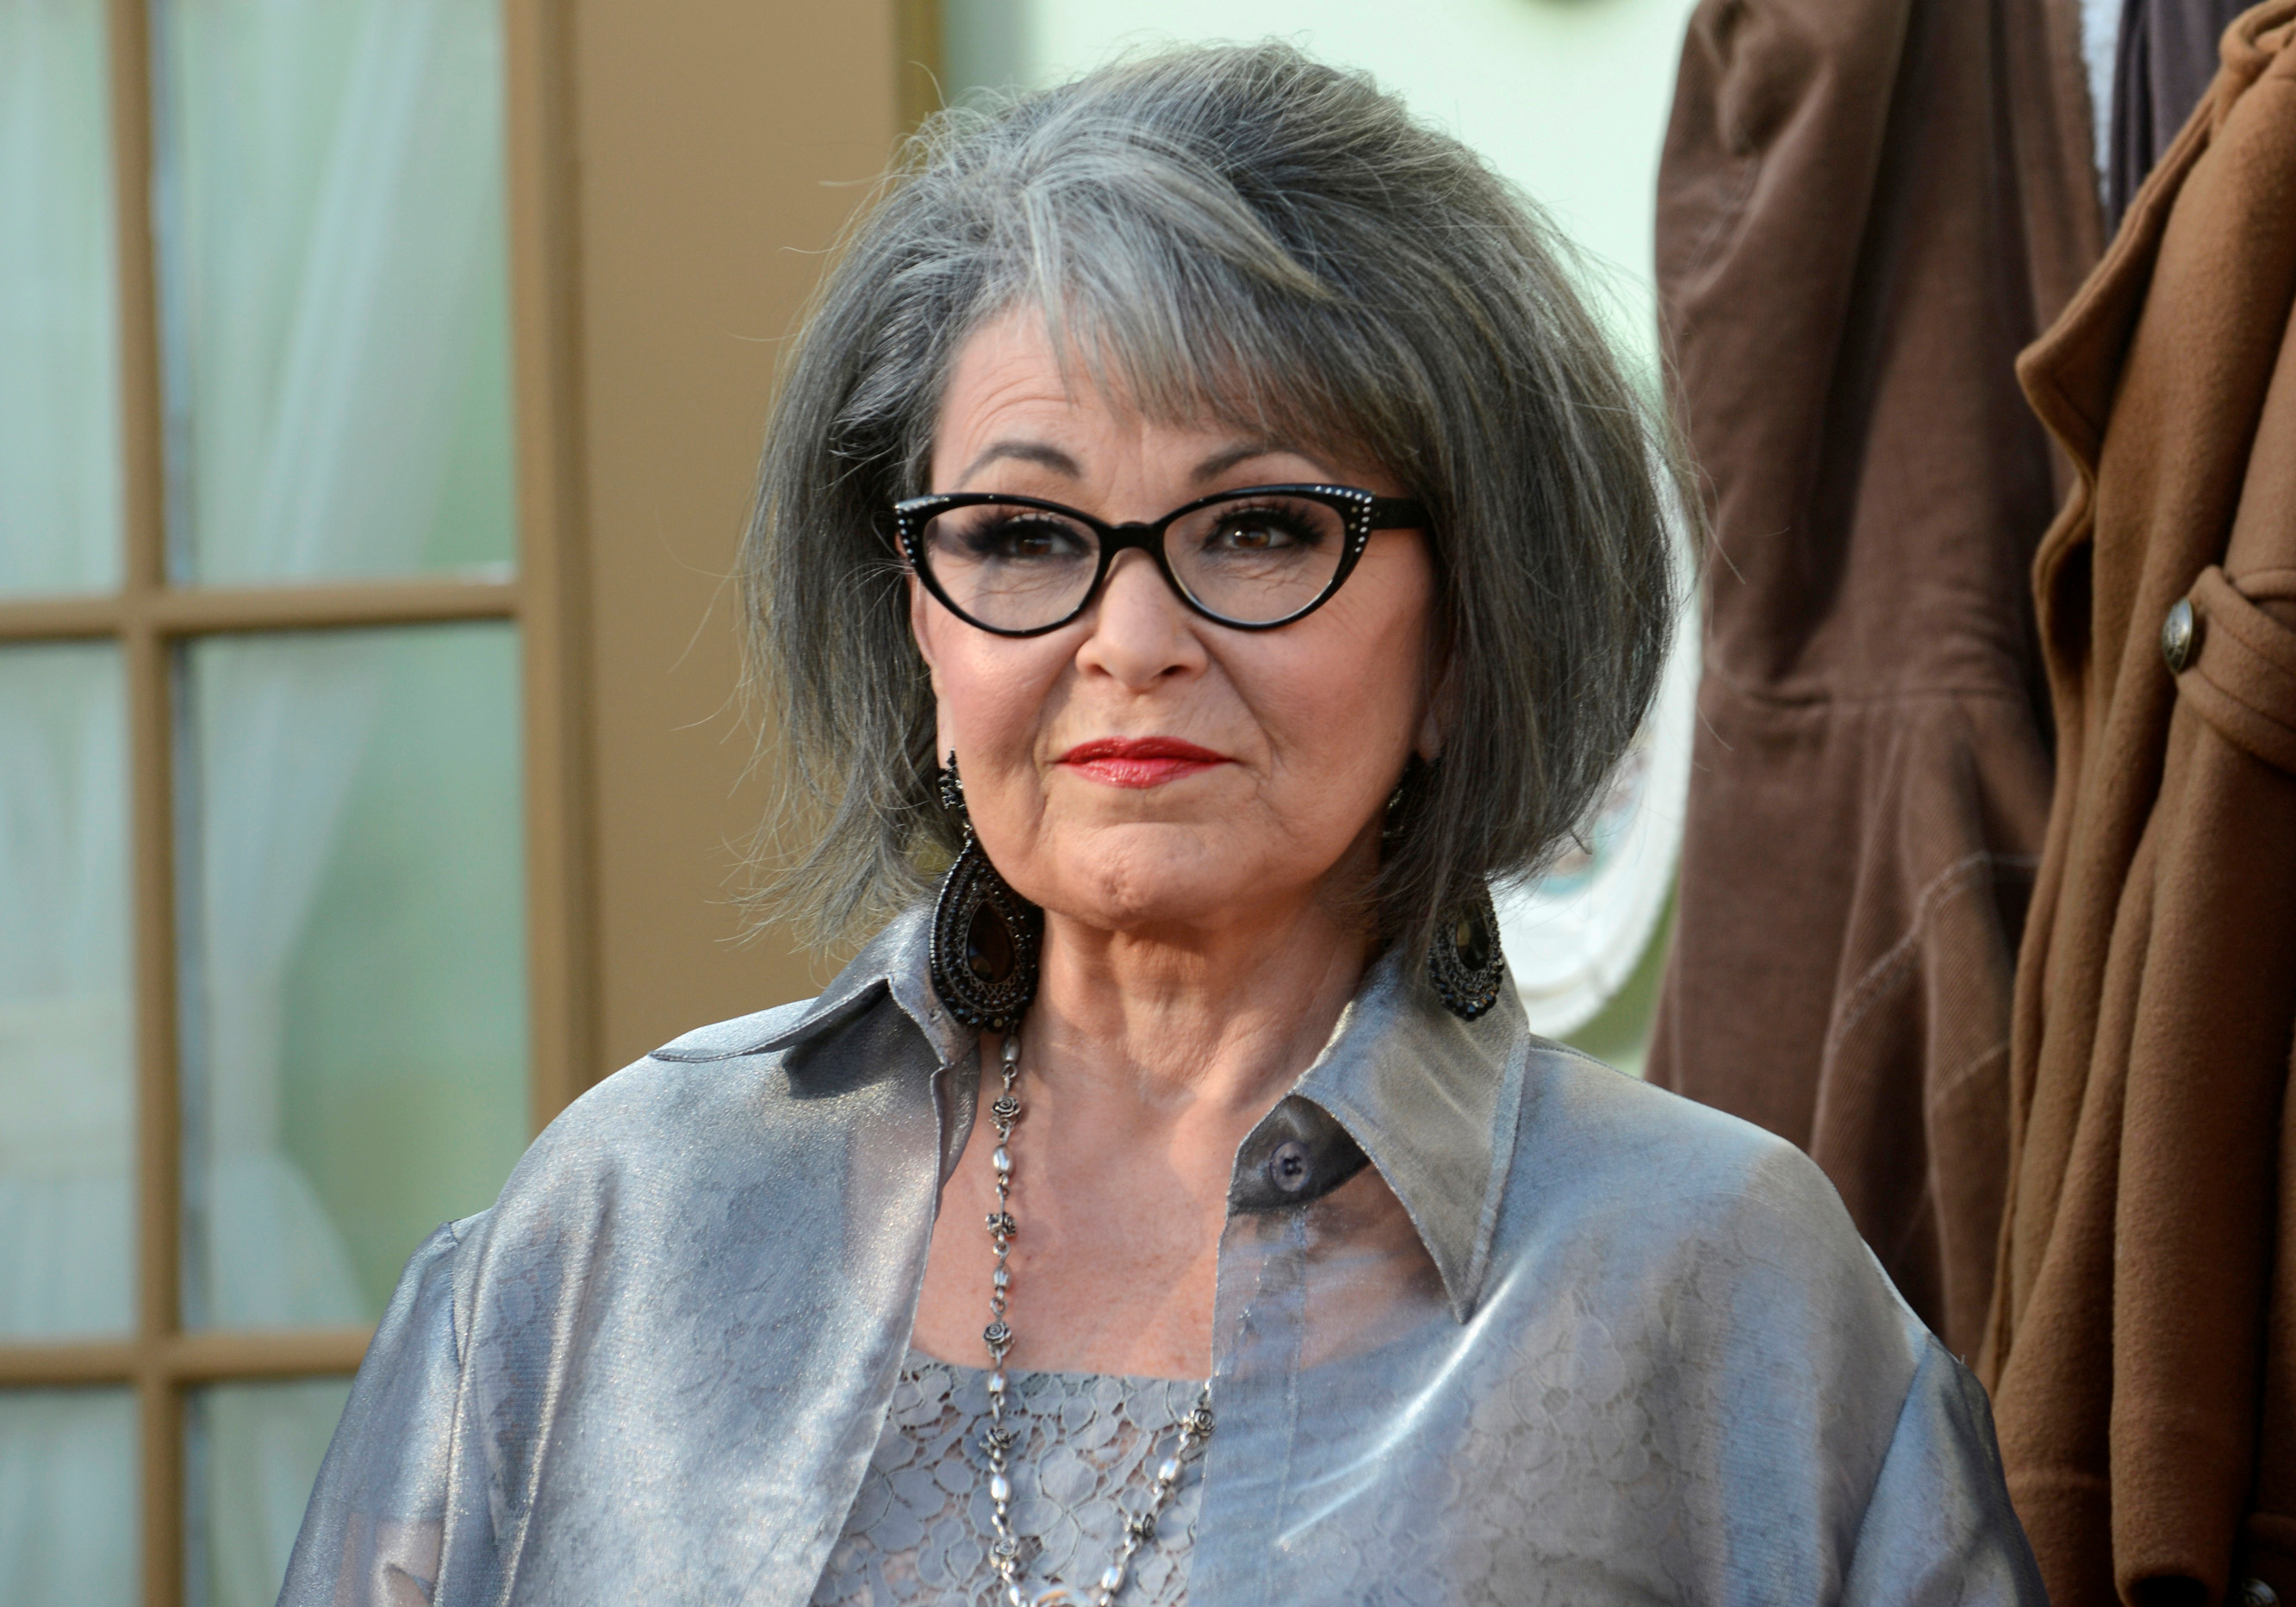 Actress Rosanne Barr arrives for the taping of the Comedy Central Roast of Roseanne in Los Angeles, Aug. 4, 2012.